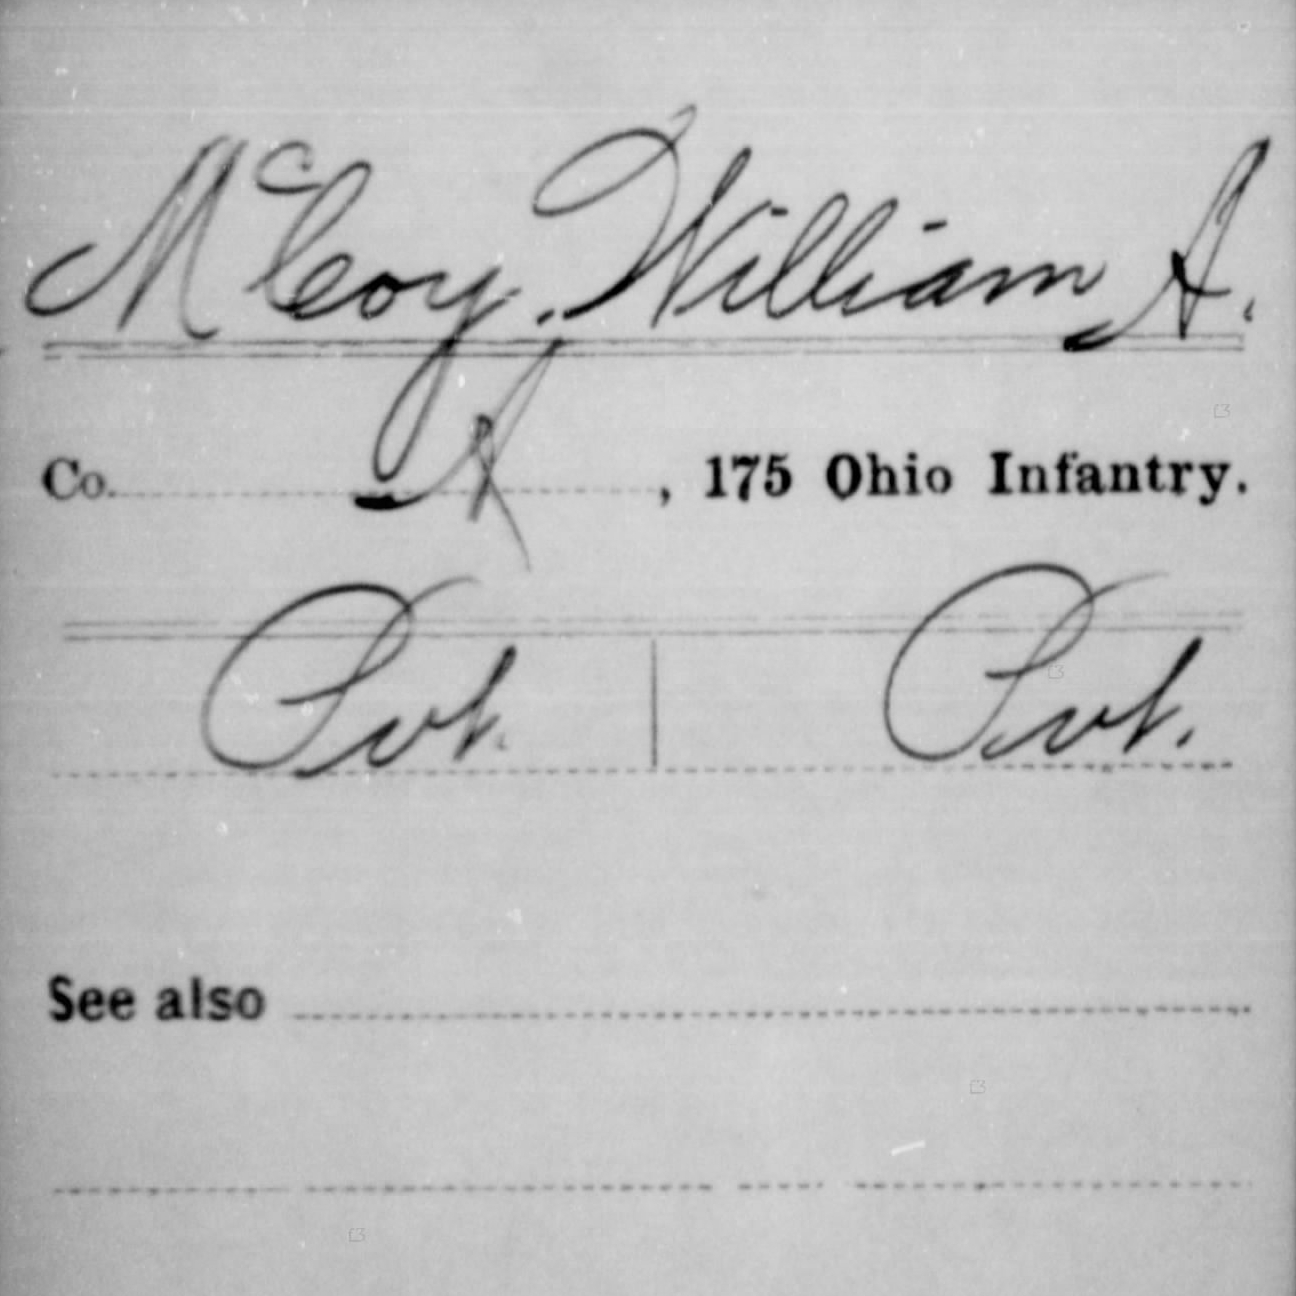 Pvt. William McCoy, Co. A, 175th OH Infantry, USA